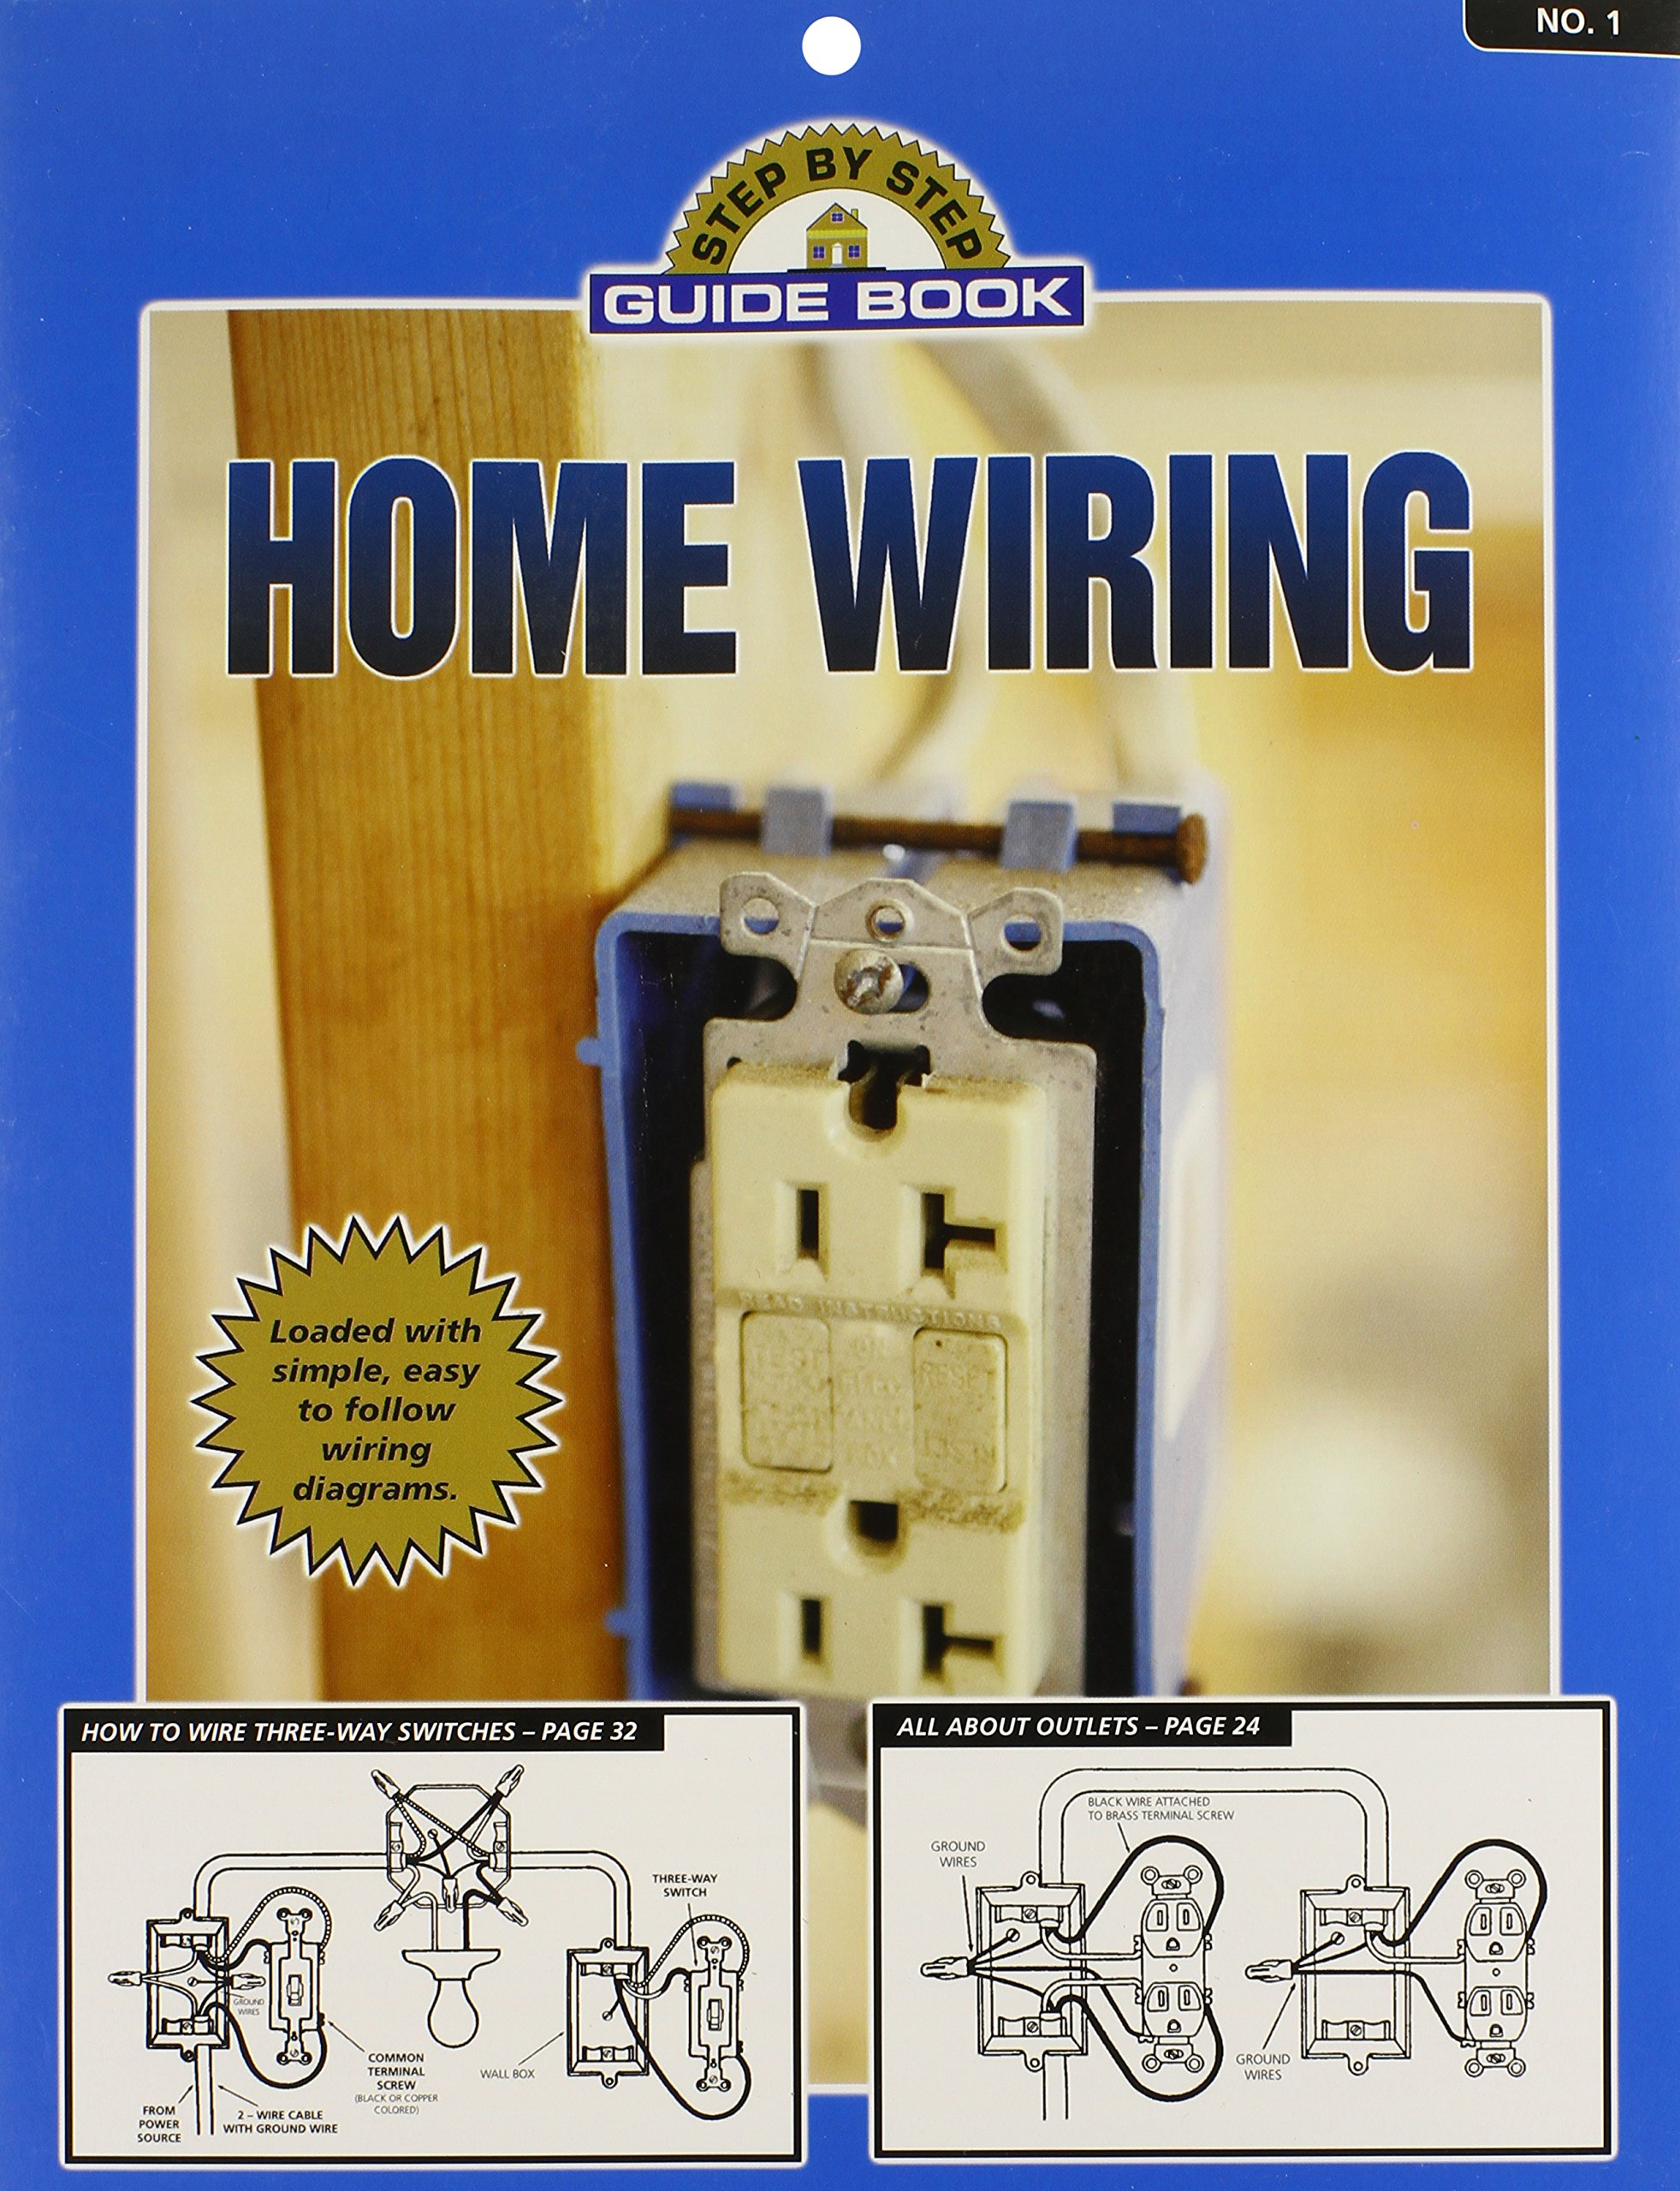 Step By Guide Book On Home Wiring Ray Mcreynolds Elaine Diy House Diagrams Shane E Richins 9780961920104 Books